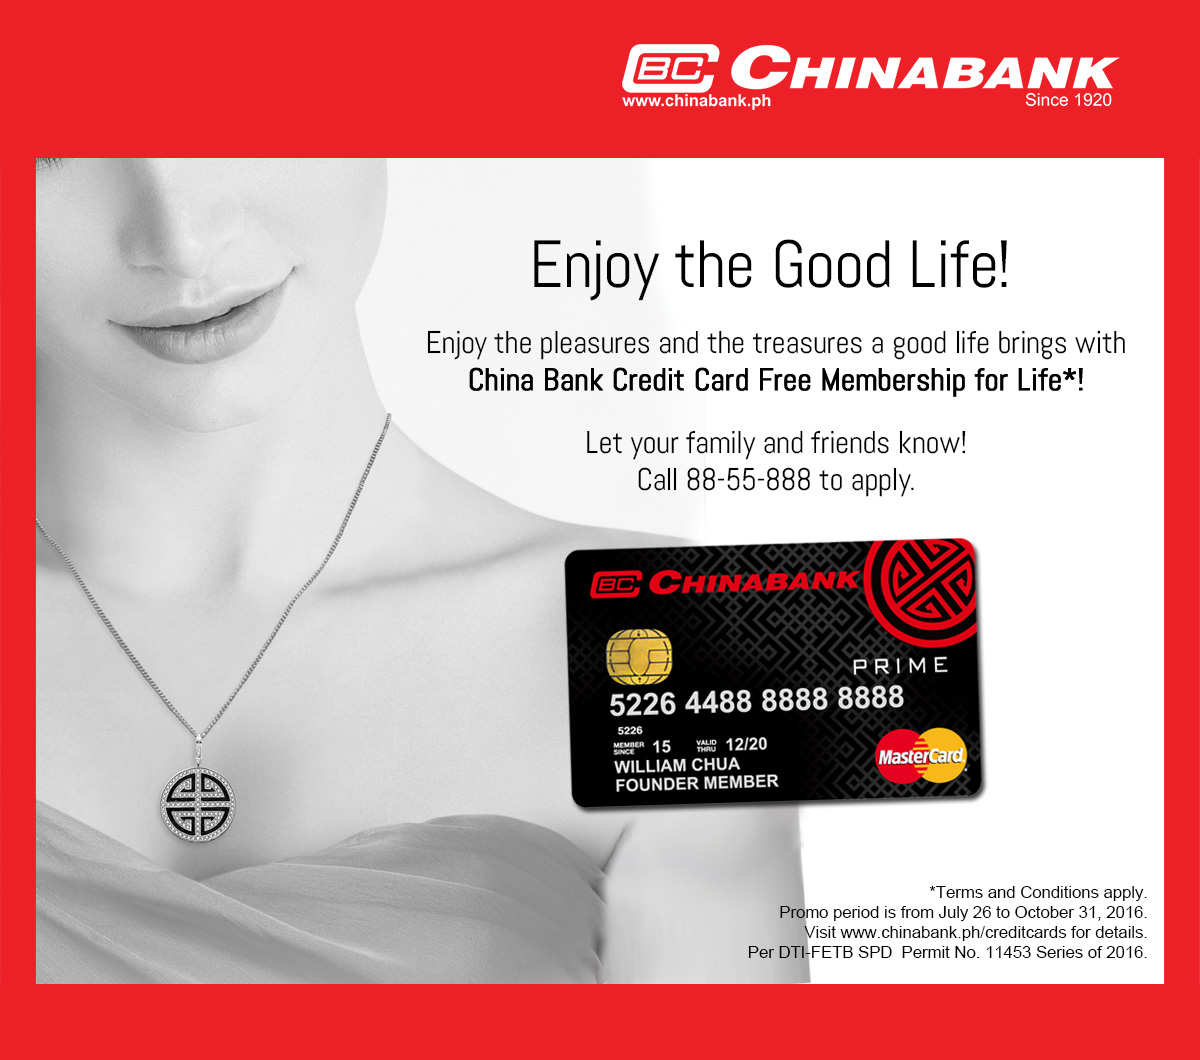 Enjoy The Good Life With China Bank Credit Card Free. Mba In Information Technology. Caribbean Medical School Cost. Best Ground Source Heat Pump. Aesthetic Surgery Center Day Care Bellevue Wa. Medical Assistant Responsibilities. Auto Body Repair Boulder Business Dsl Pricing. Courses In Library Science Quick Sale Houses. Draegers Cooking School Charter Flights Omaha